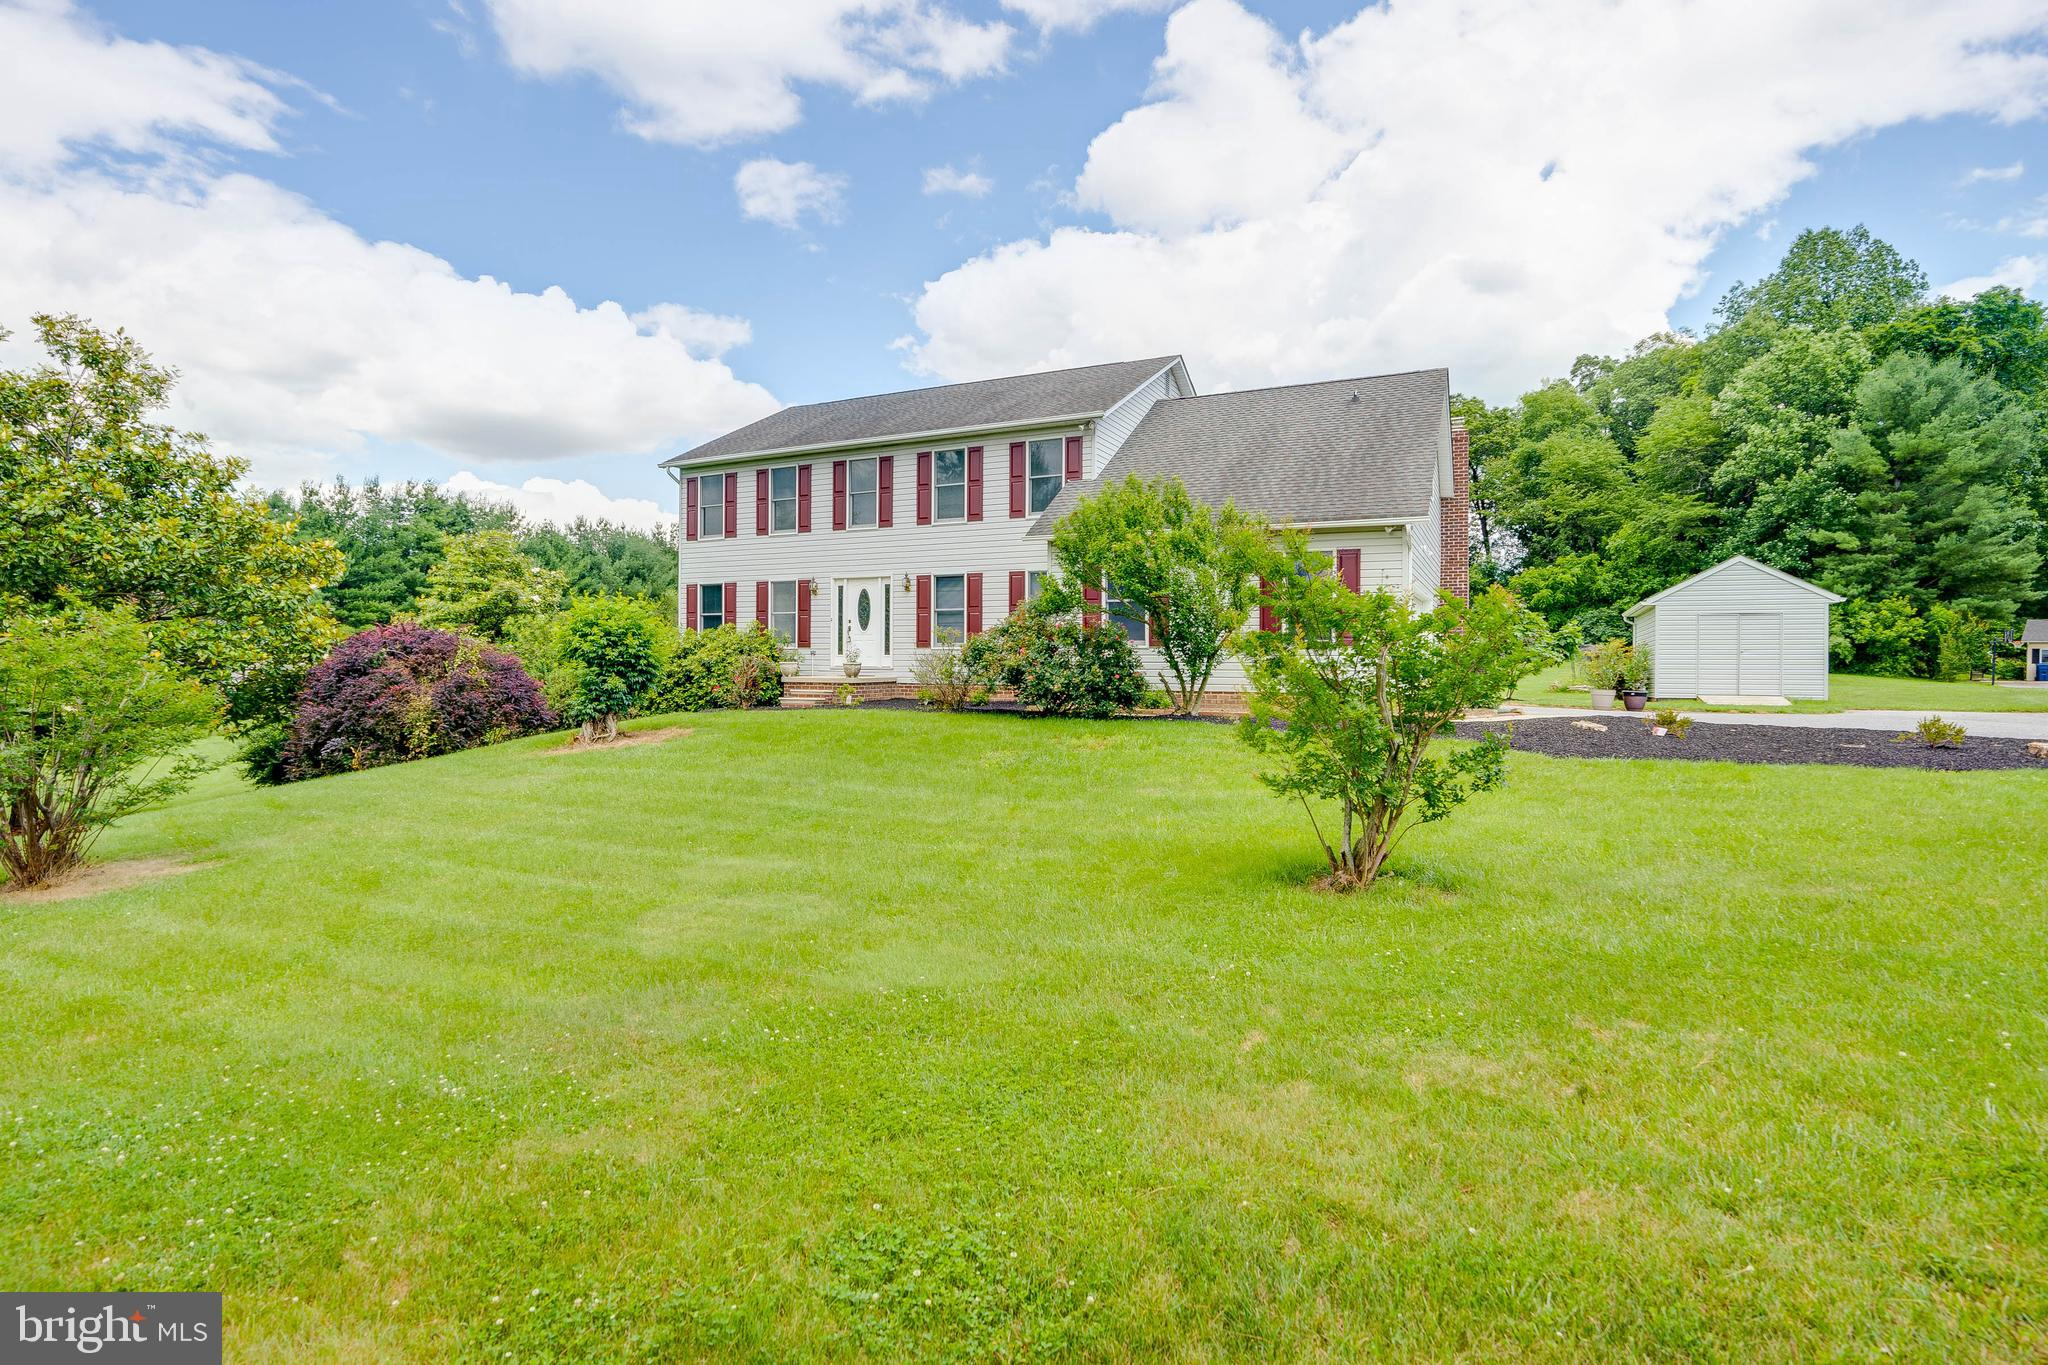 Welcome to 2305 Leeward! This home offers classic colonial charm with modern touches throughout, a r